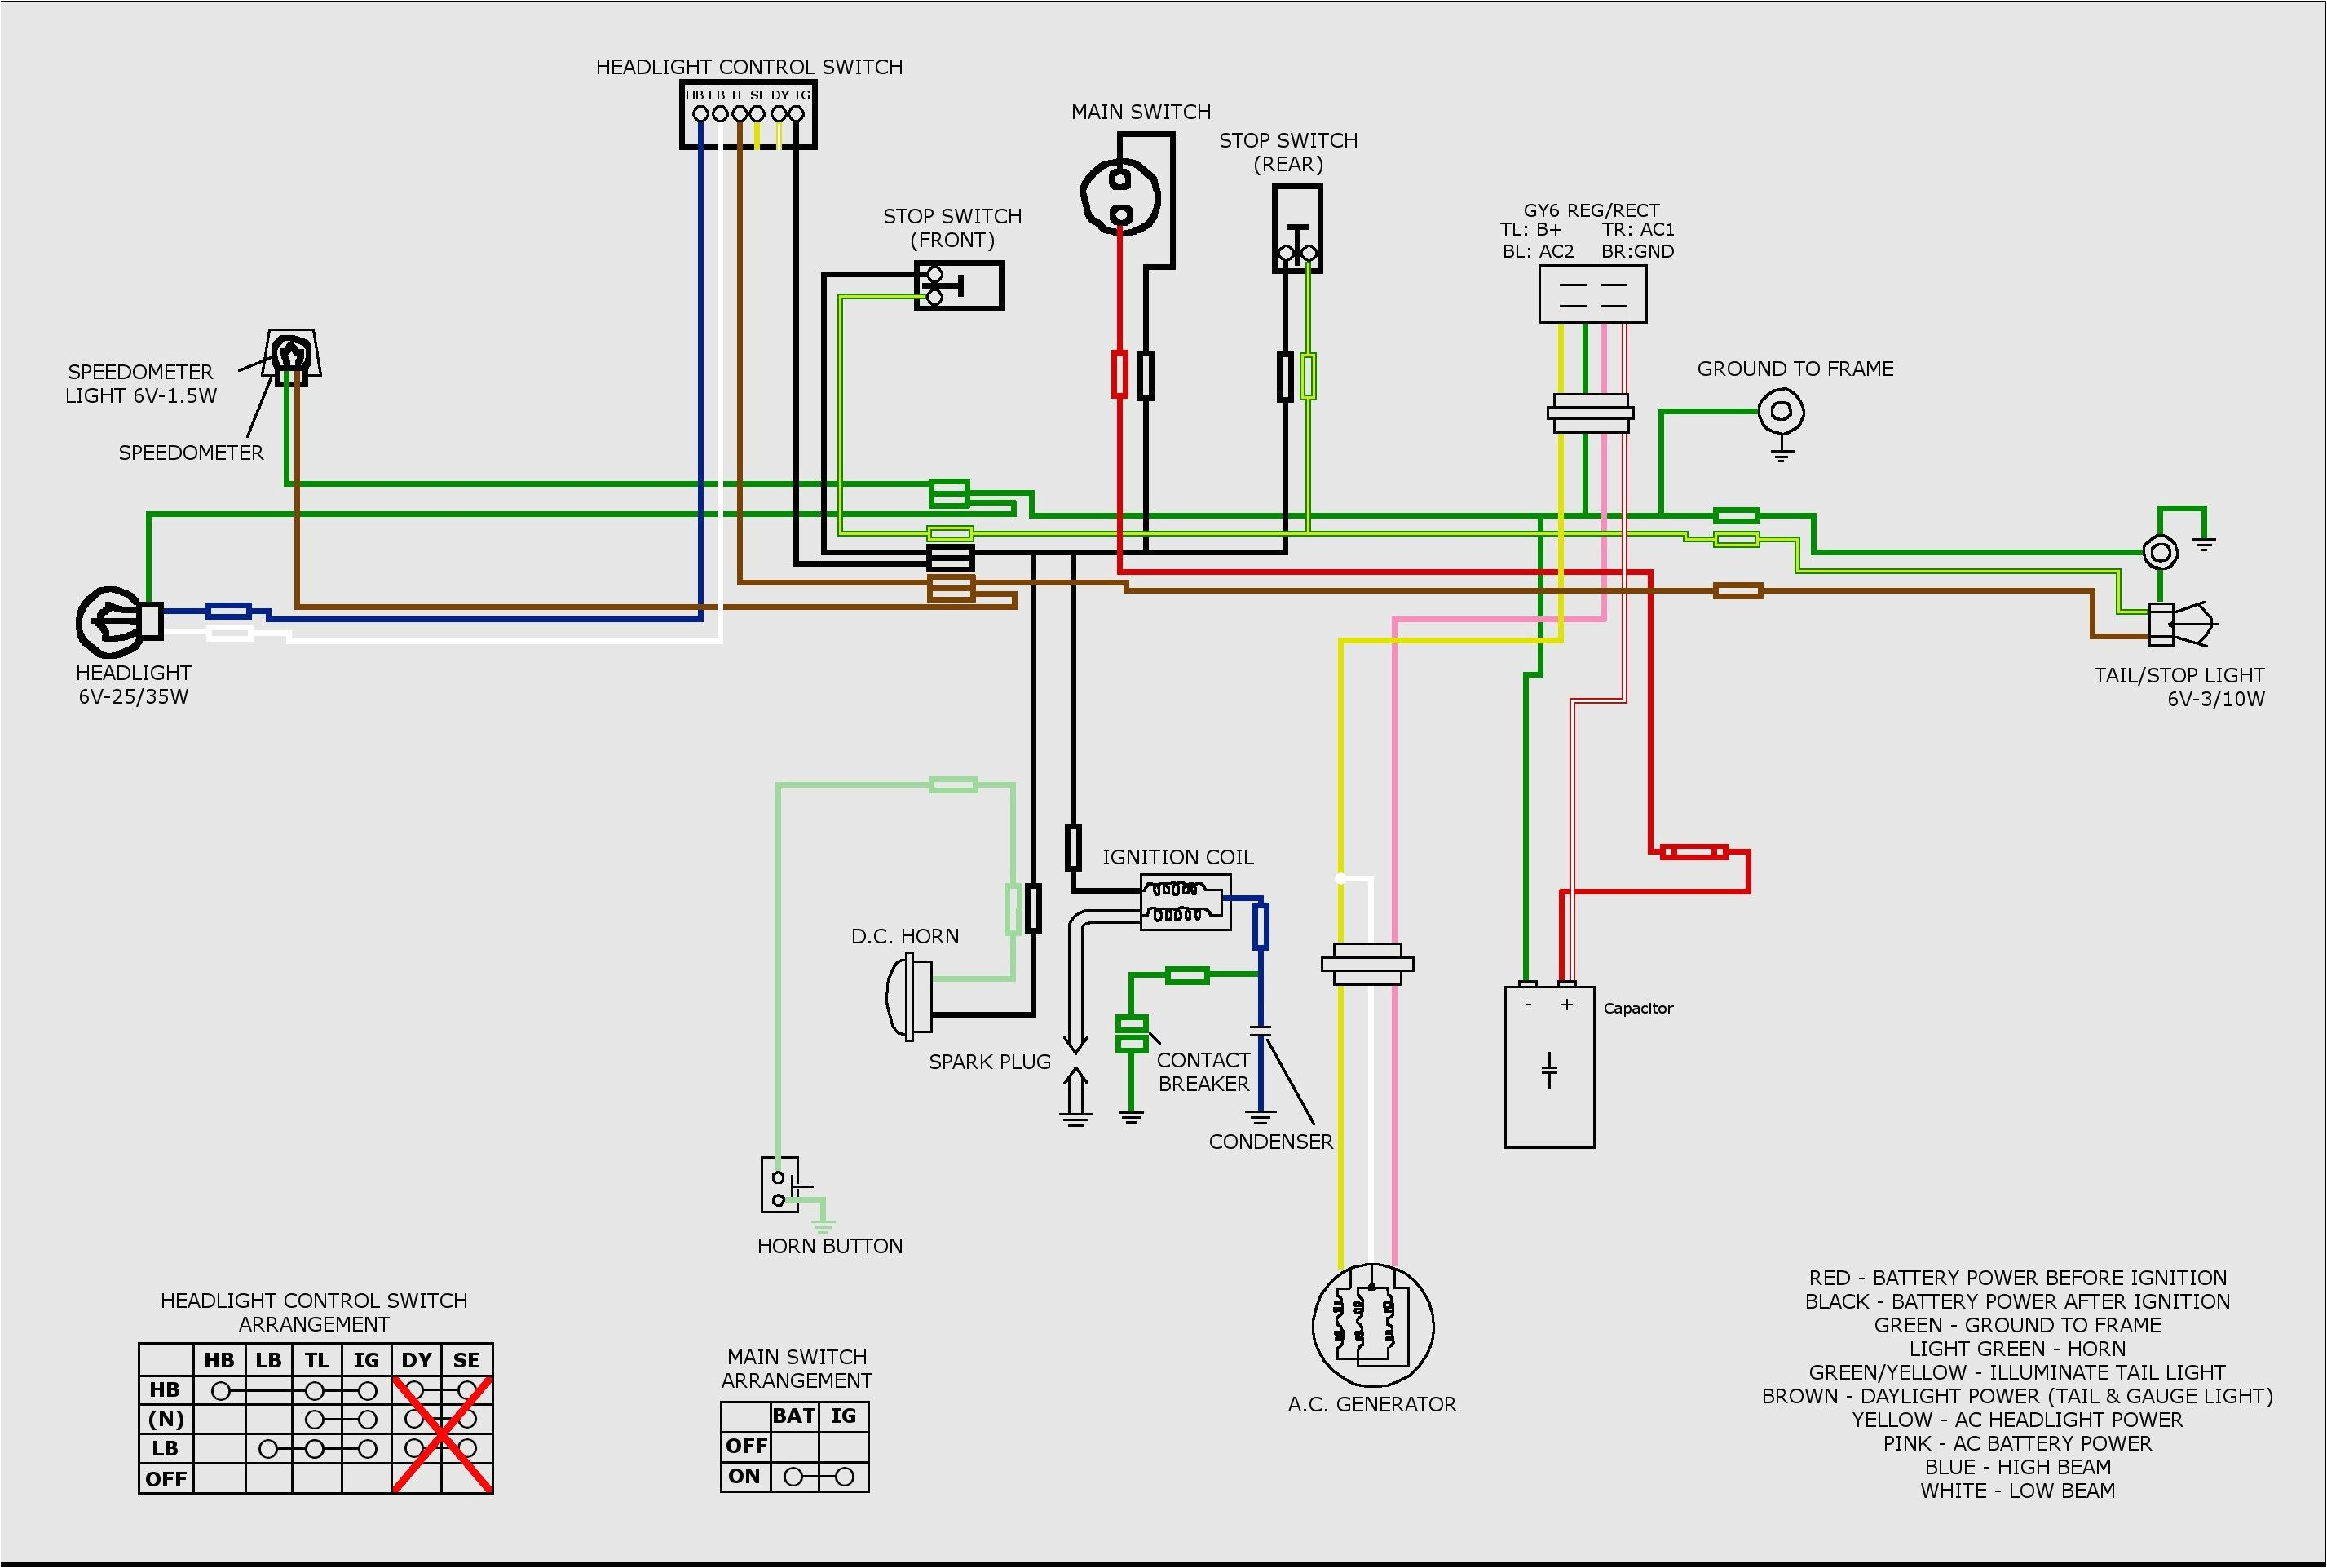 Chinese Scooter Wiring Diagram Tao Tao 49cc Scooter Cdi Wiring Diagram Wiring Diagram Rows